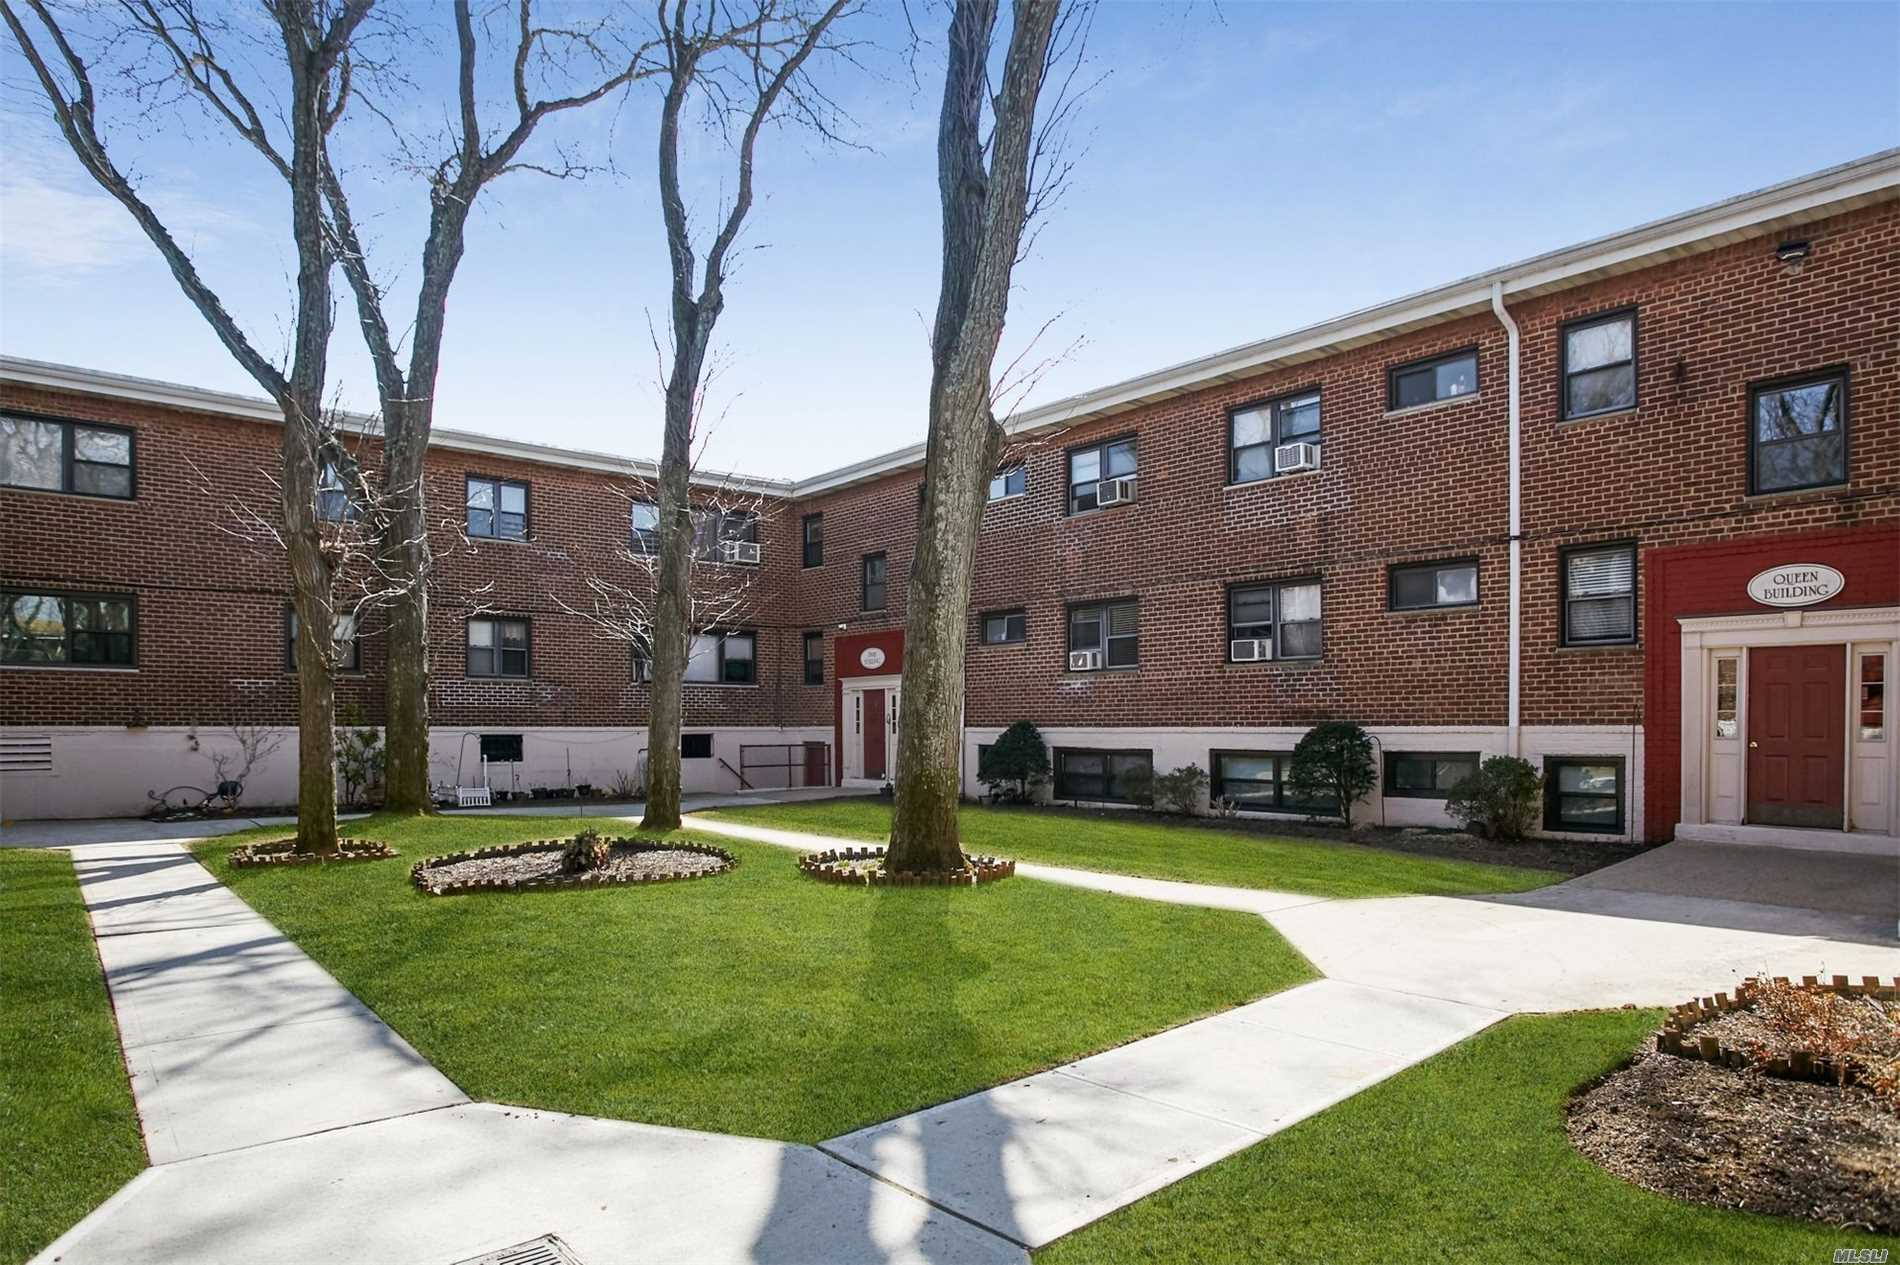 Beautifully Maintained Flowerview Coop, Cozy Court in front of Queen Bldg Unit 2E, take stairs to Second Floor, Unit is right, enter into generous foyer with double coat closet, EIK w/ Updated Cabinetry, custom tile, seats 4, Large Bright Livingroom, Master Bedroom, Second Bedroom, Updated Full Bathroom, Wall of Closets in hall, Washer Dryer on Premises.